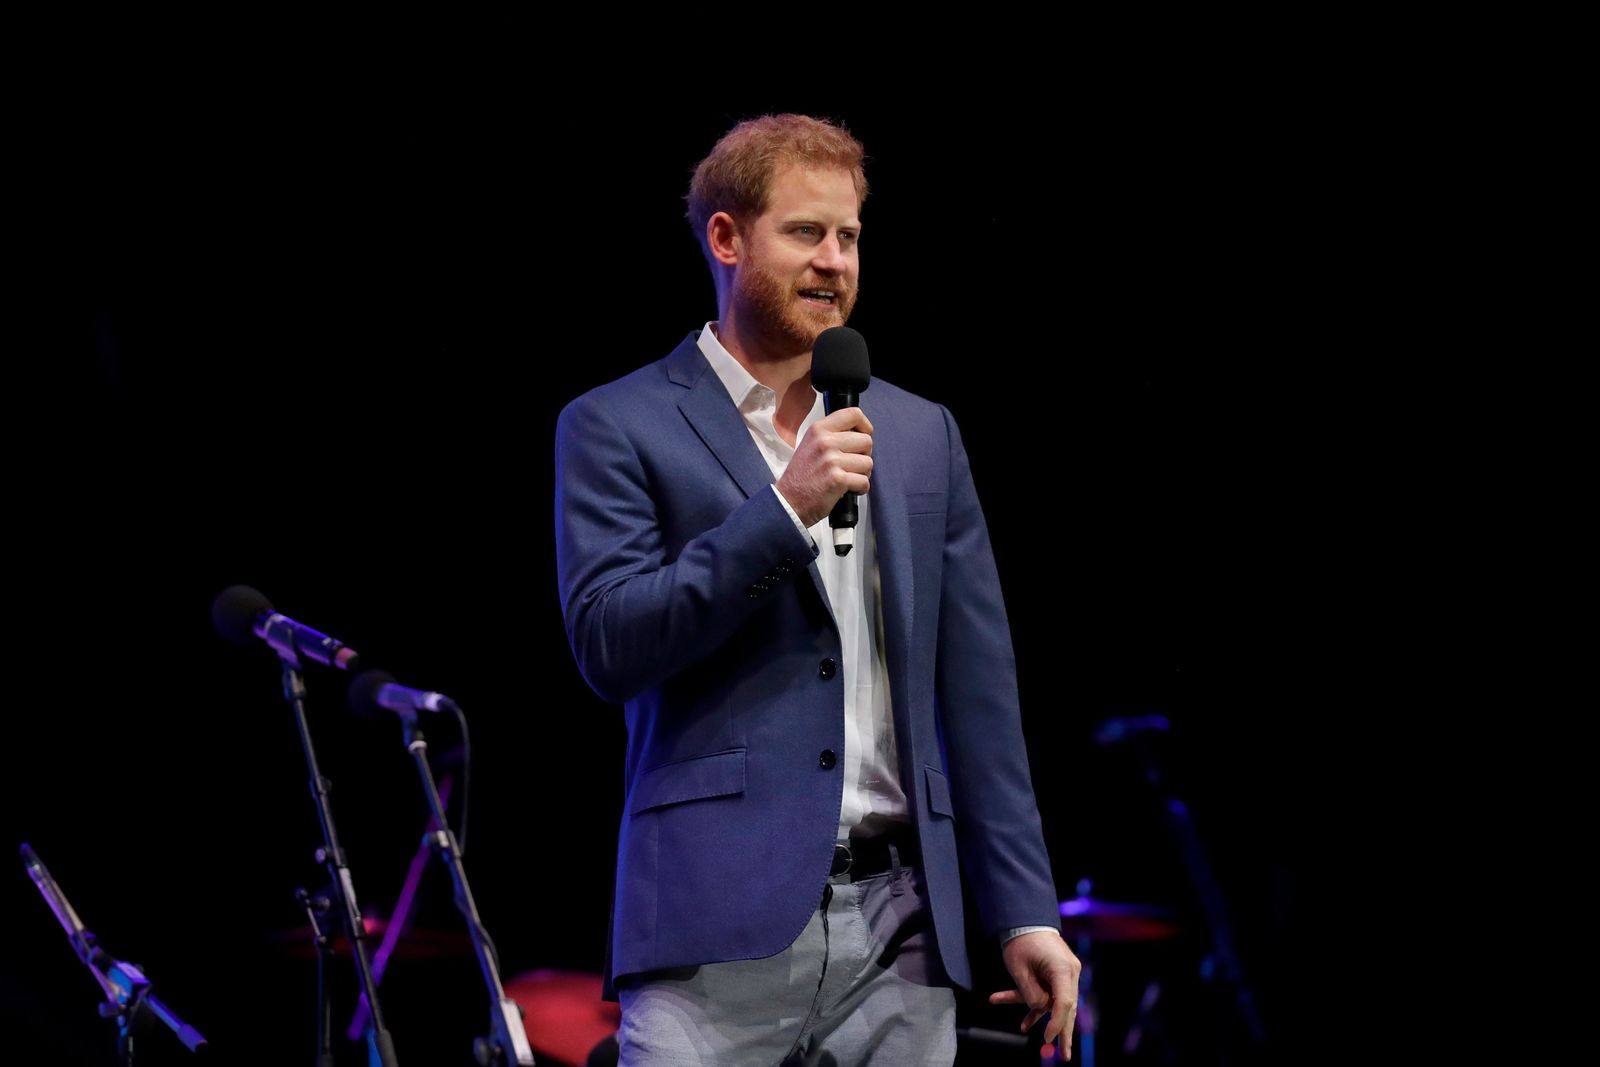 Britain's Prince Harry speaks on stage during a concert hosted by his charity Sentebale at Hampton Court Palace, in London, Tuesday June 11, 2019. (AP Photo/Matt Dunham, Pool)